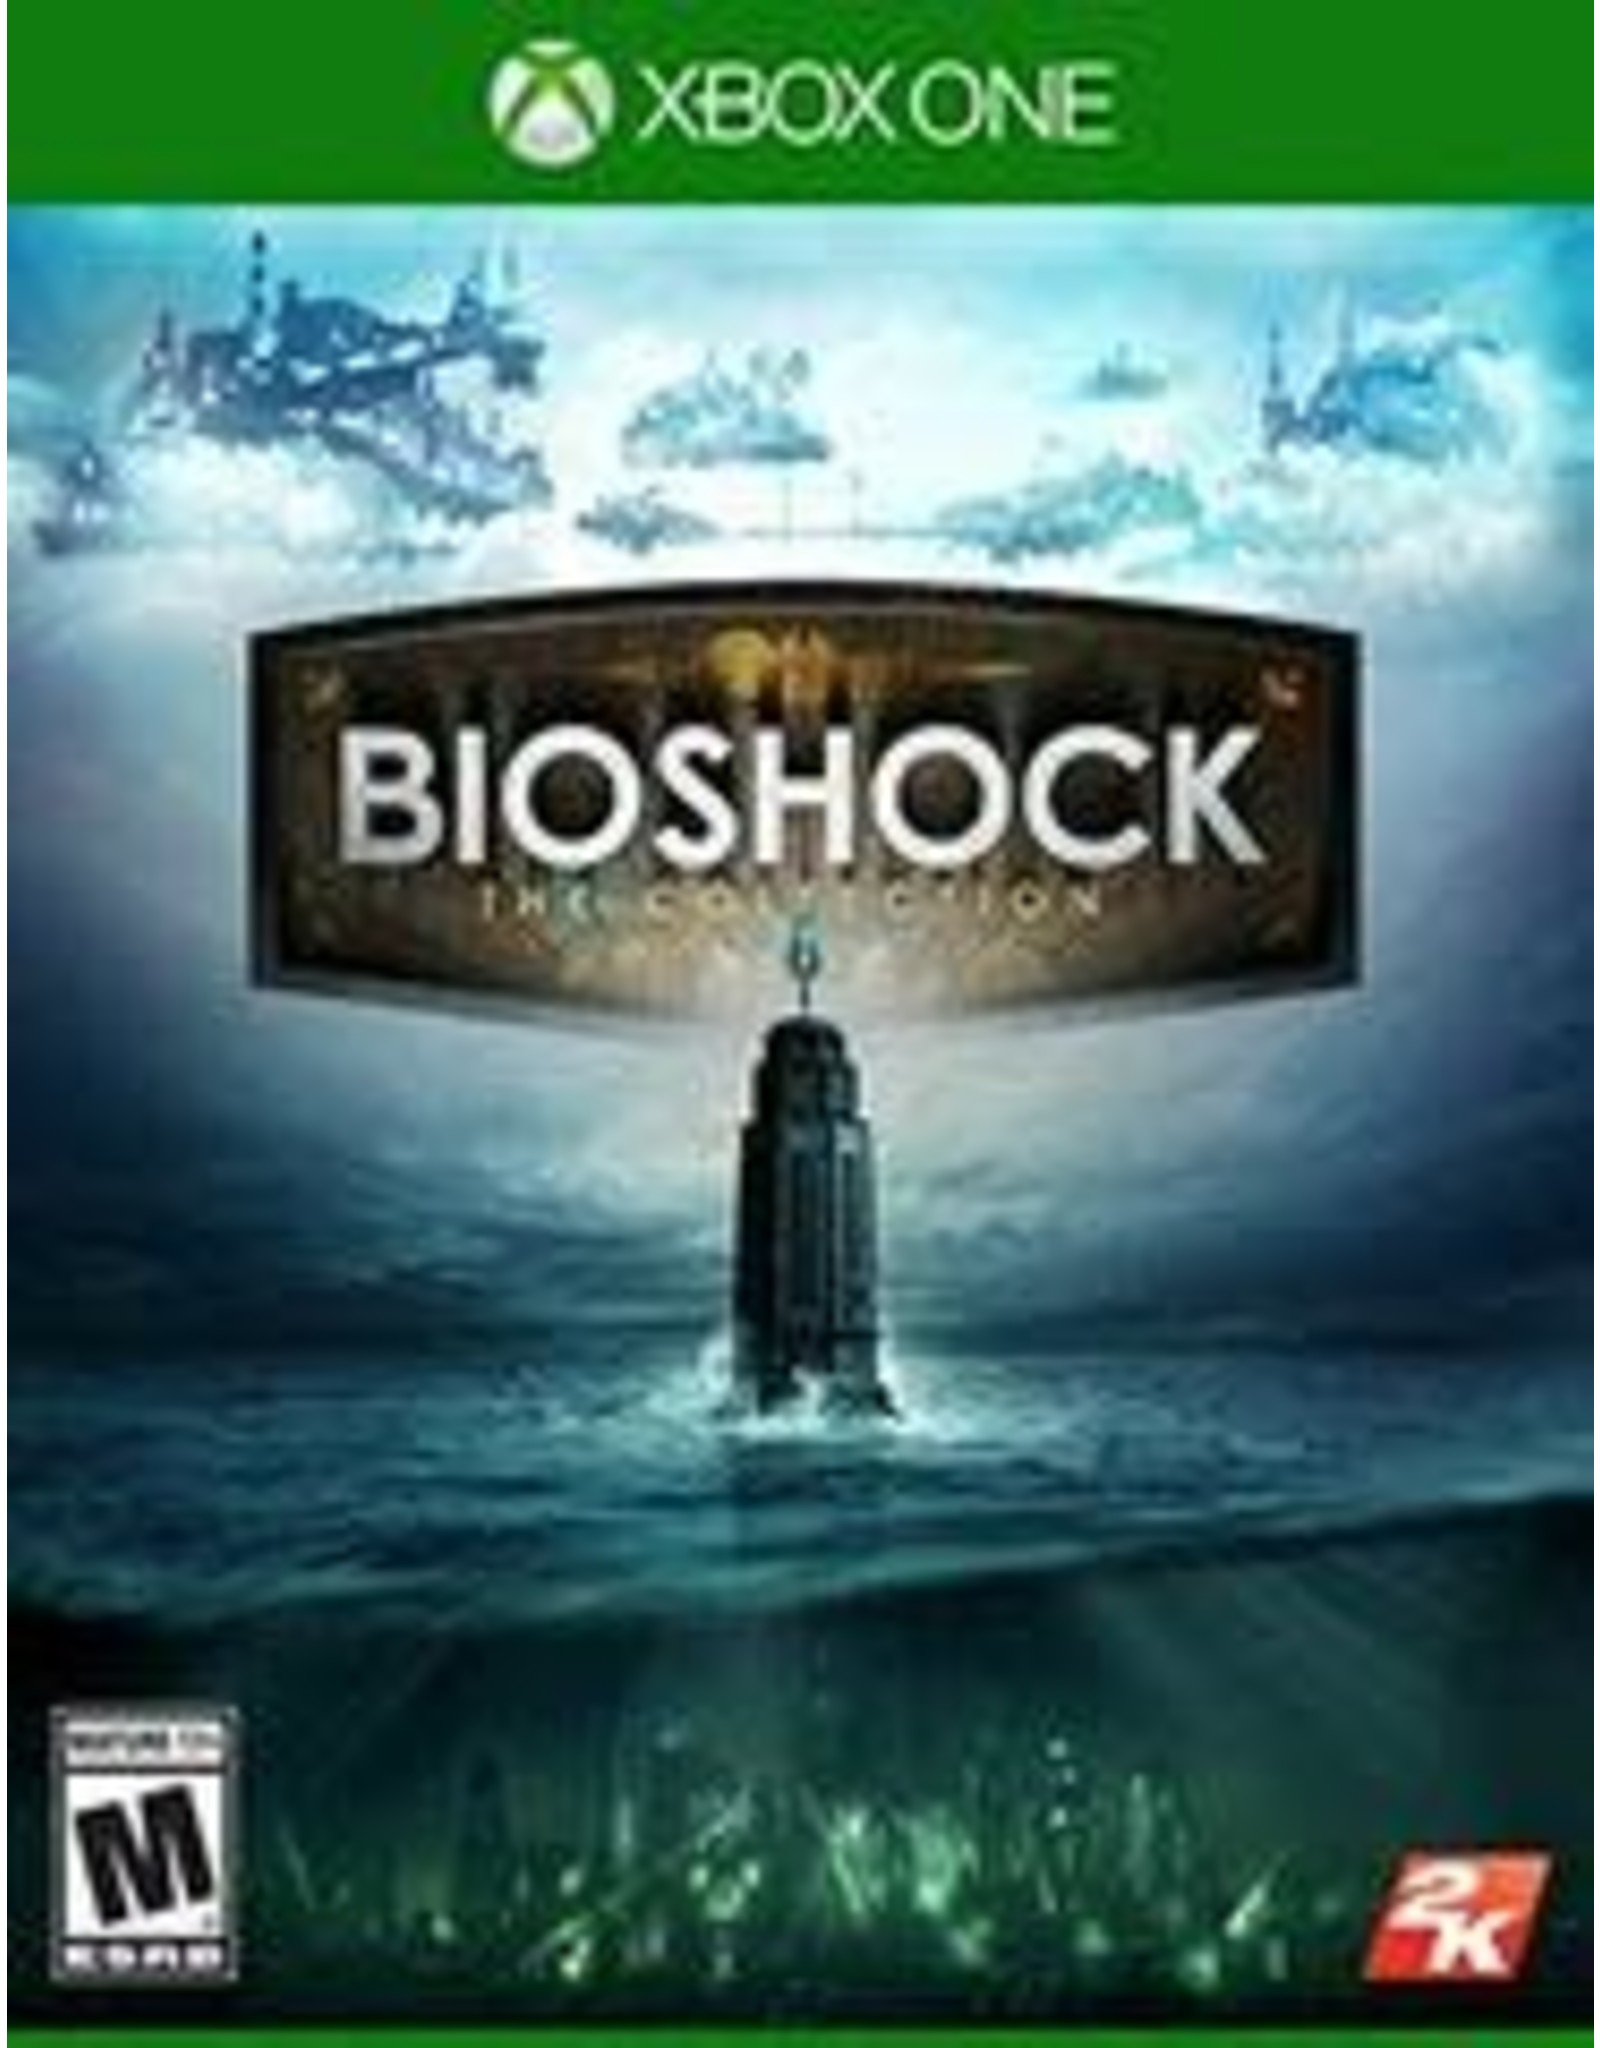 Xbox One BioShock The Collection (XB1, Used)